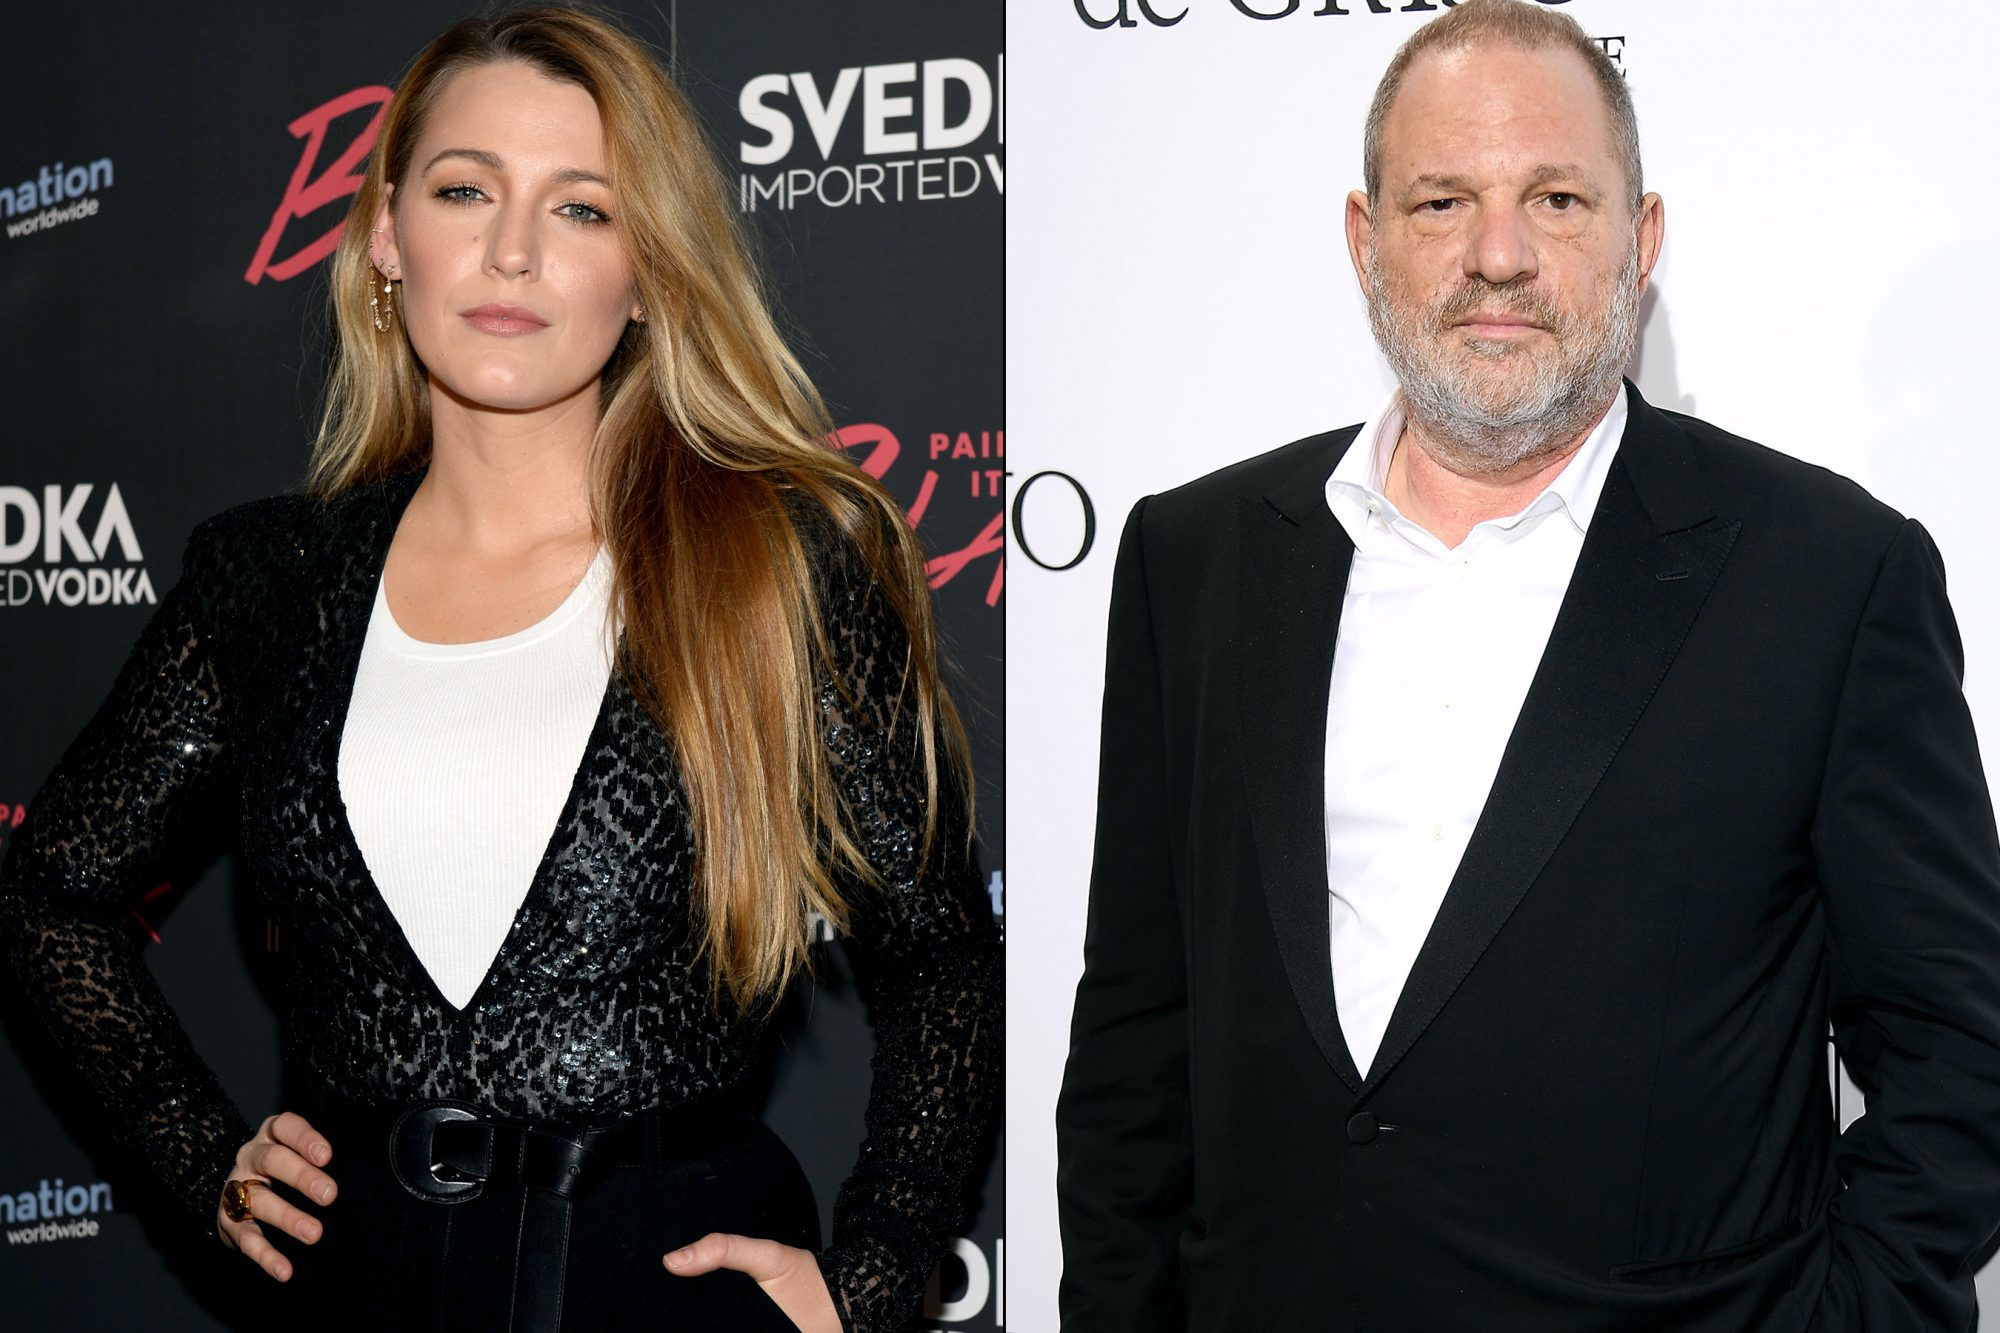 Blake Lively/ Harvey Weinstein